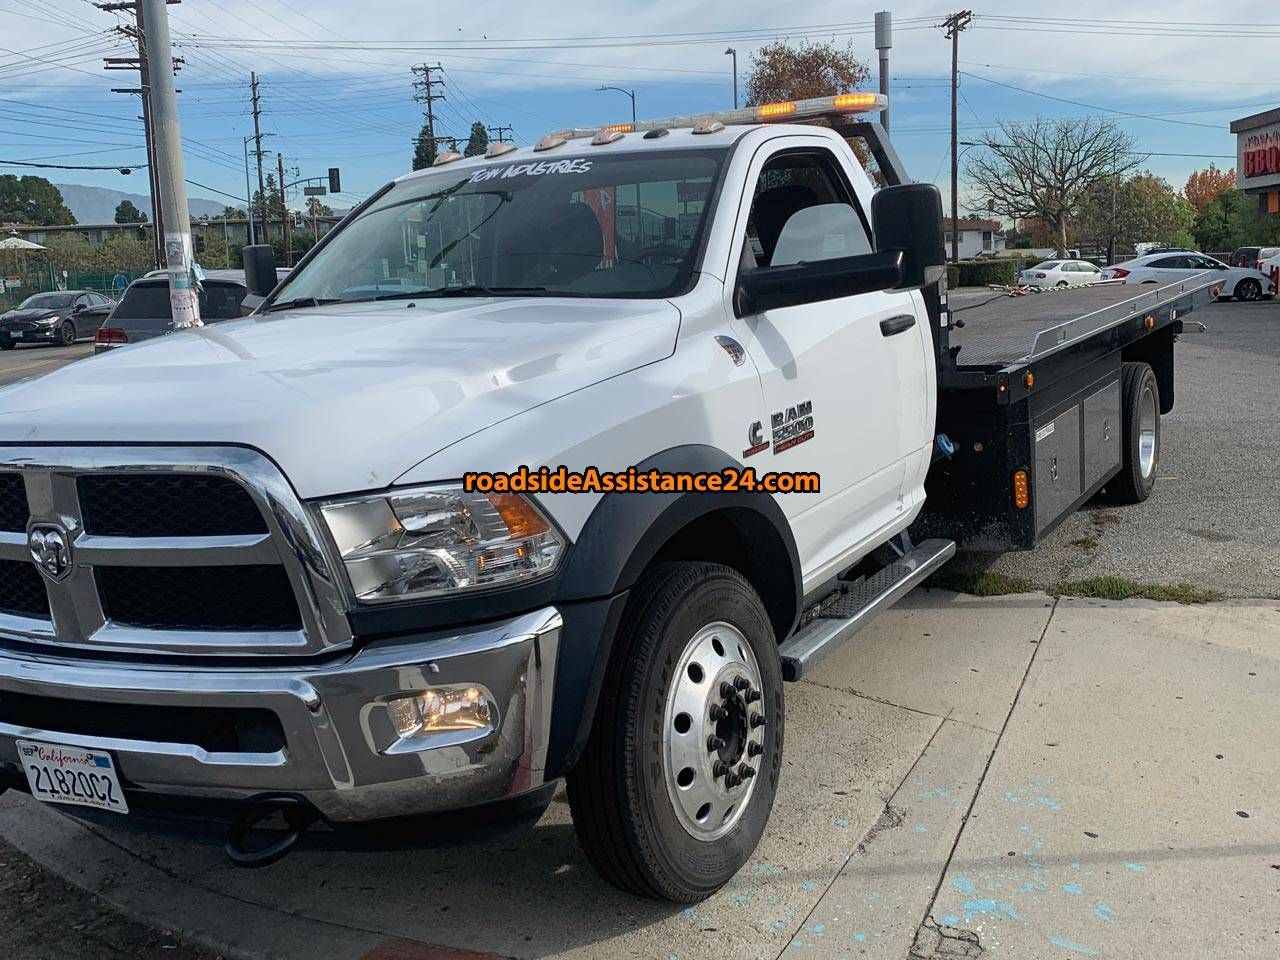 Towing Van Nuys Van Nuys Towing Tow Truck